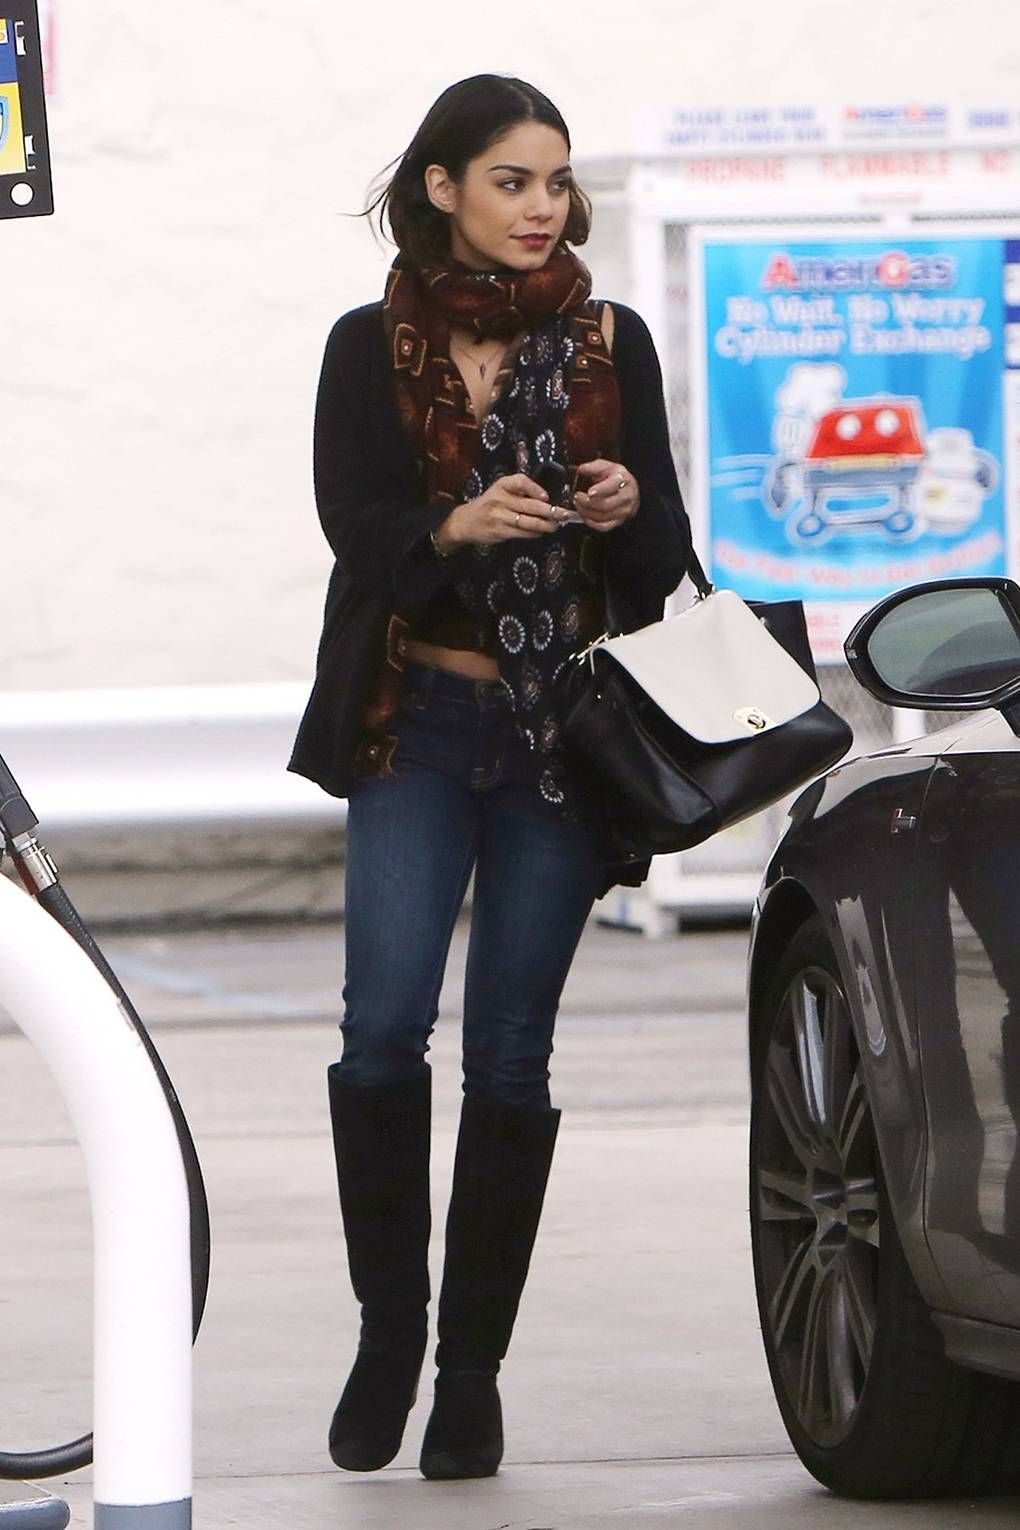 Winter wardrobe inspo from some of the world's chicest celebs and influencers -   16 vanessa hudgens style Winter ideas